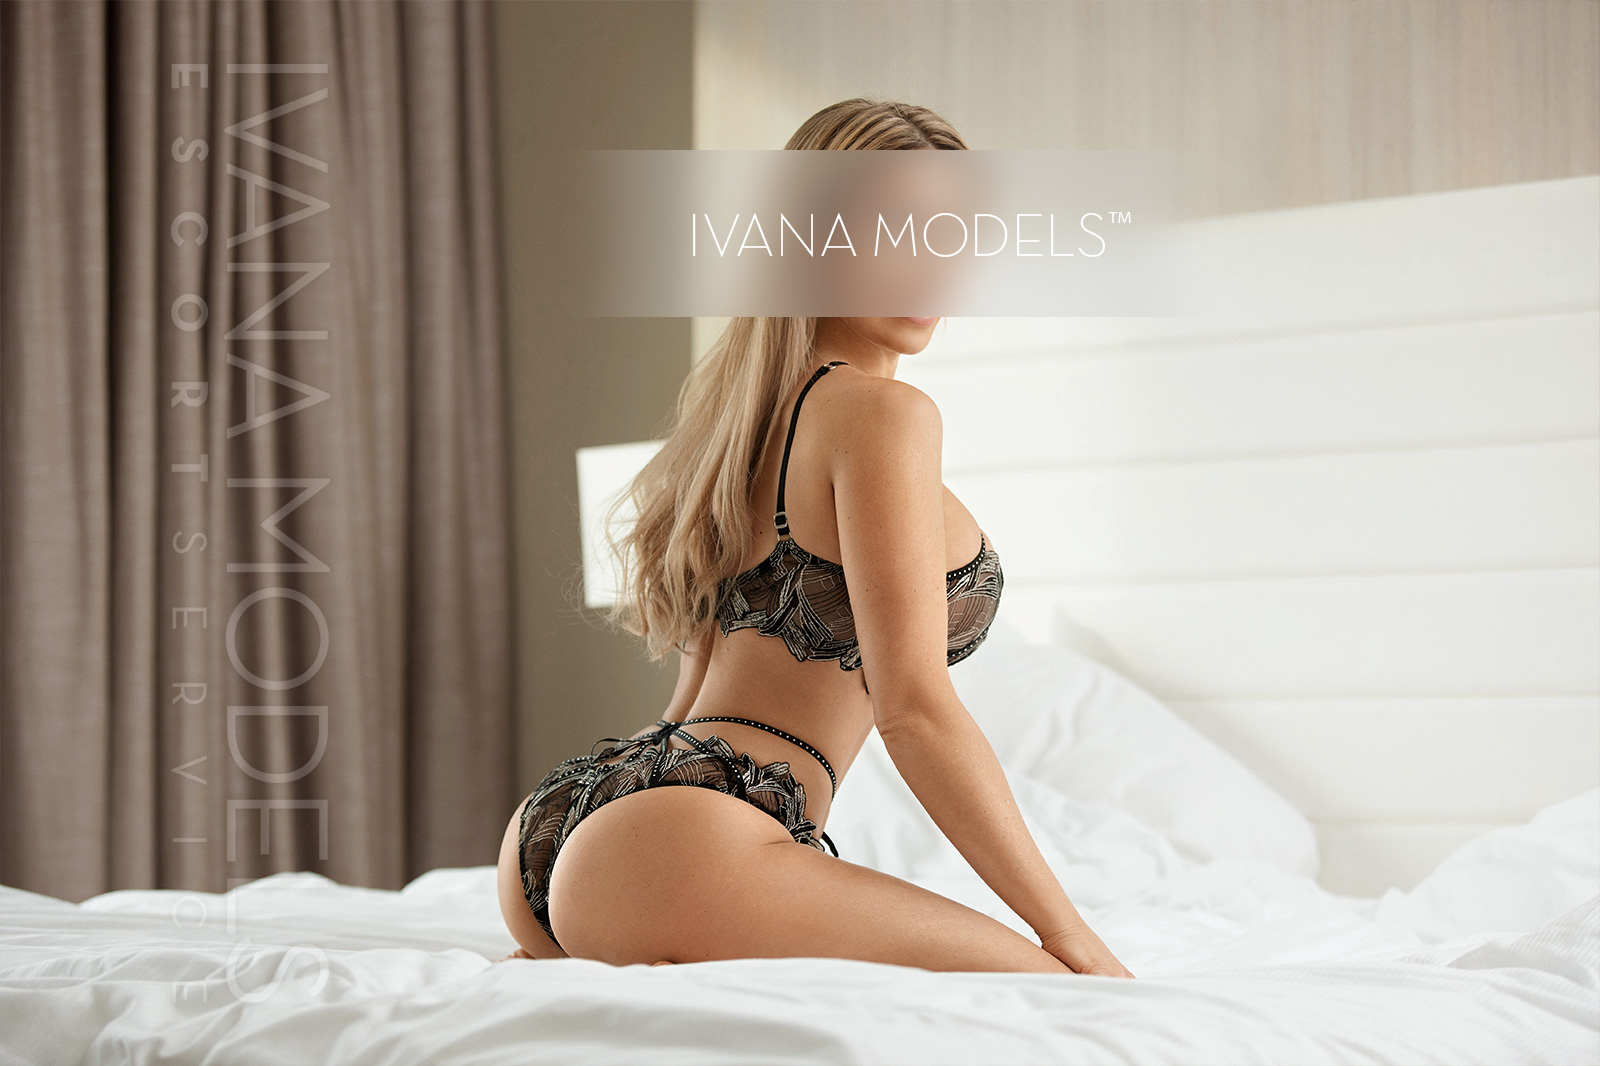 Your Escort girls and VIP escort agency with exclusively private escort models - Eve - Sexy Girls Cologne